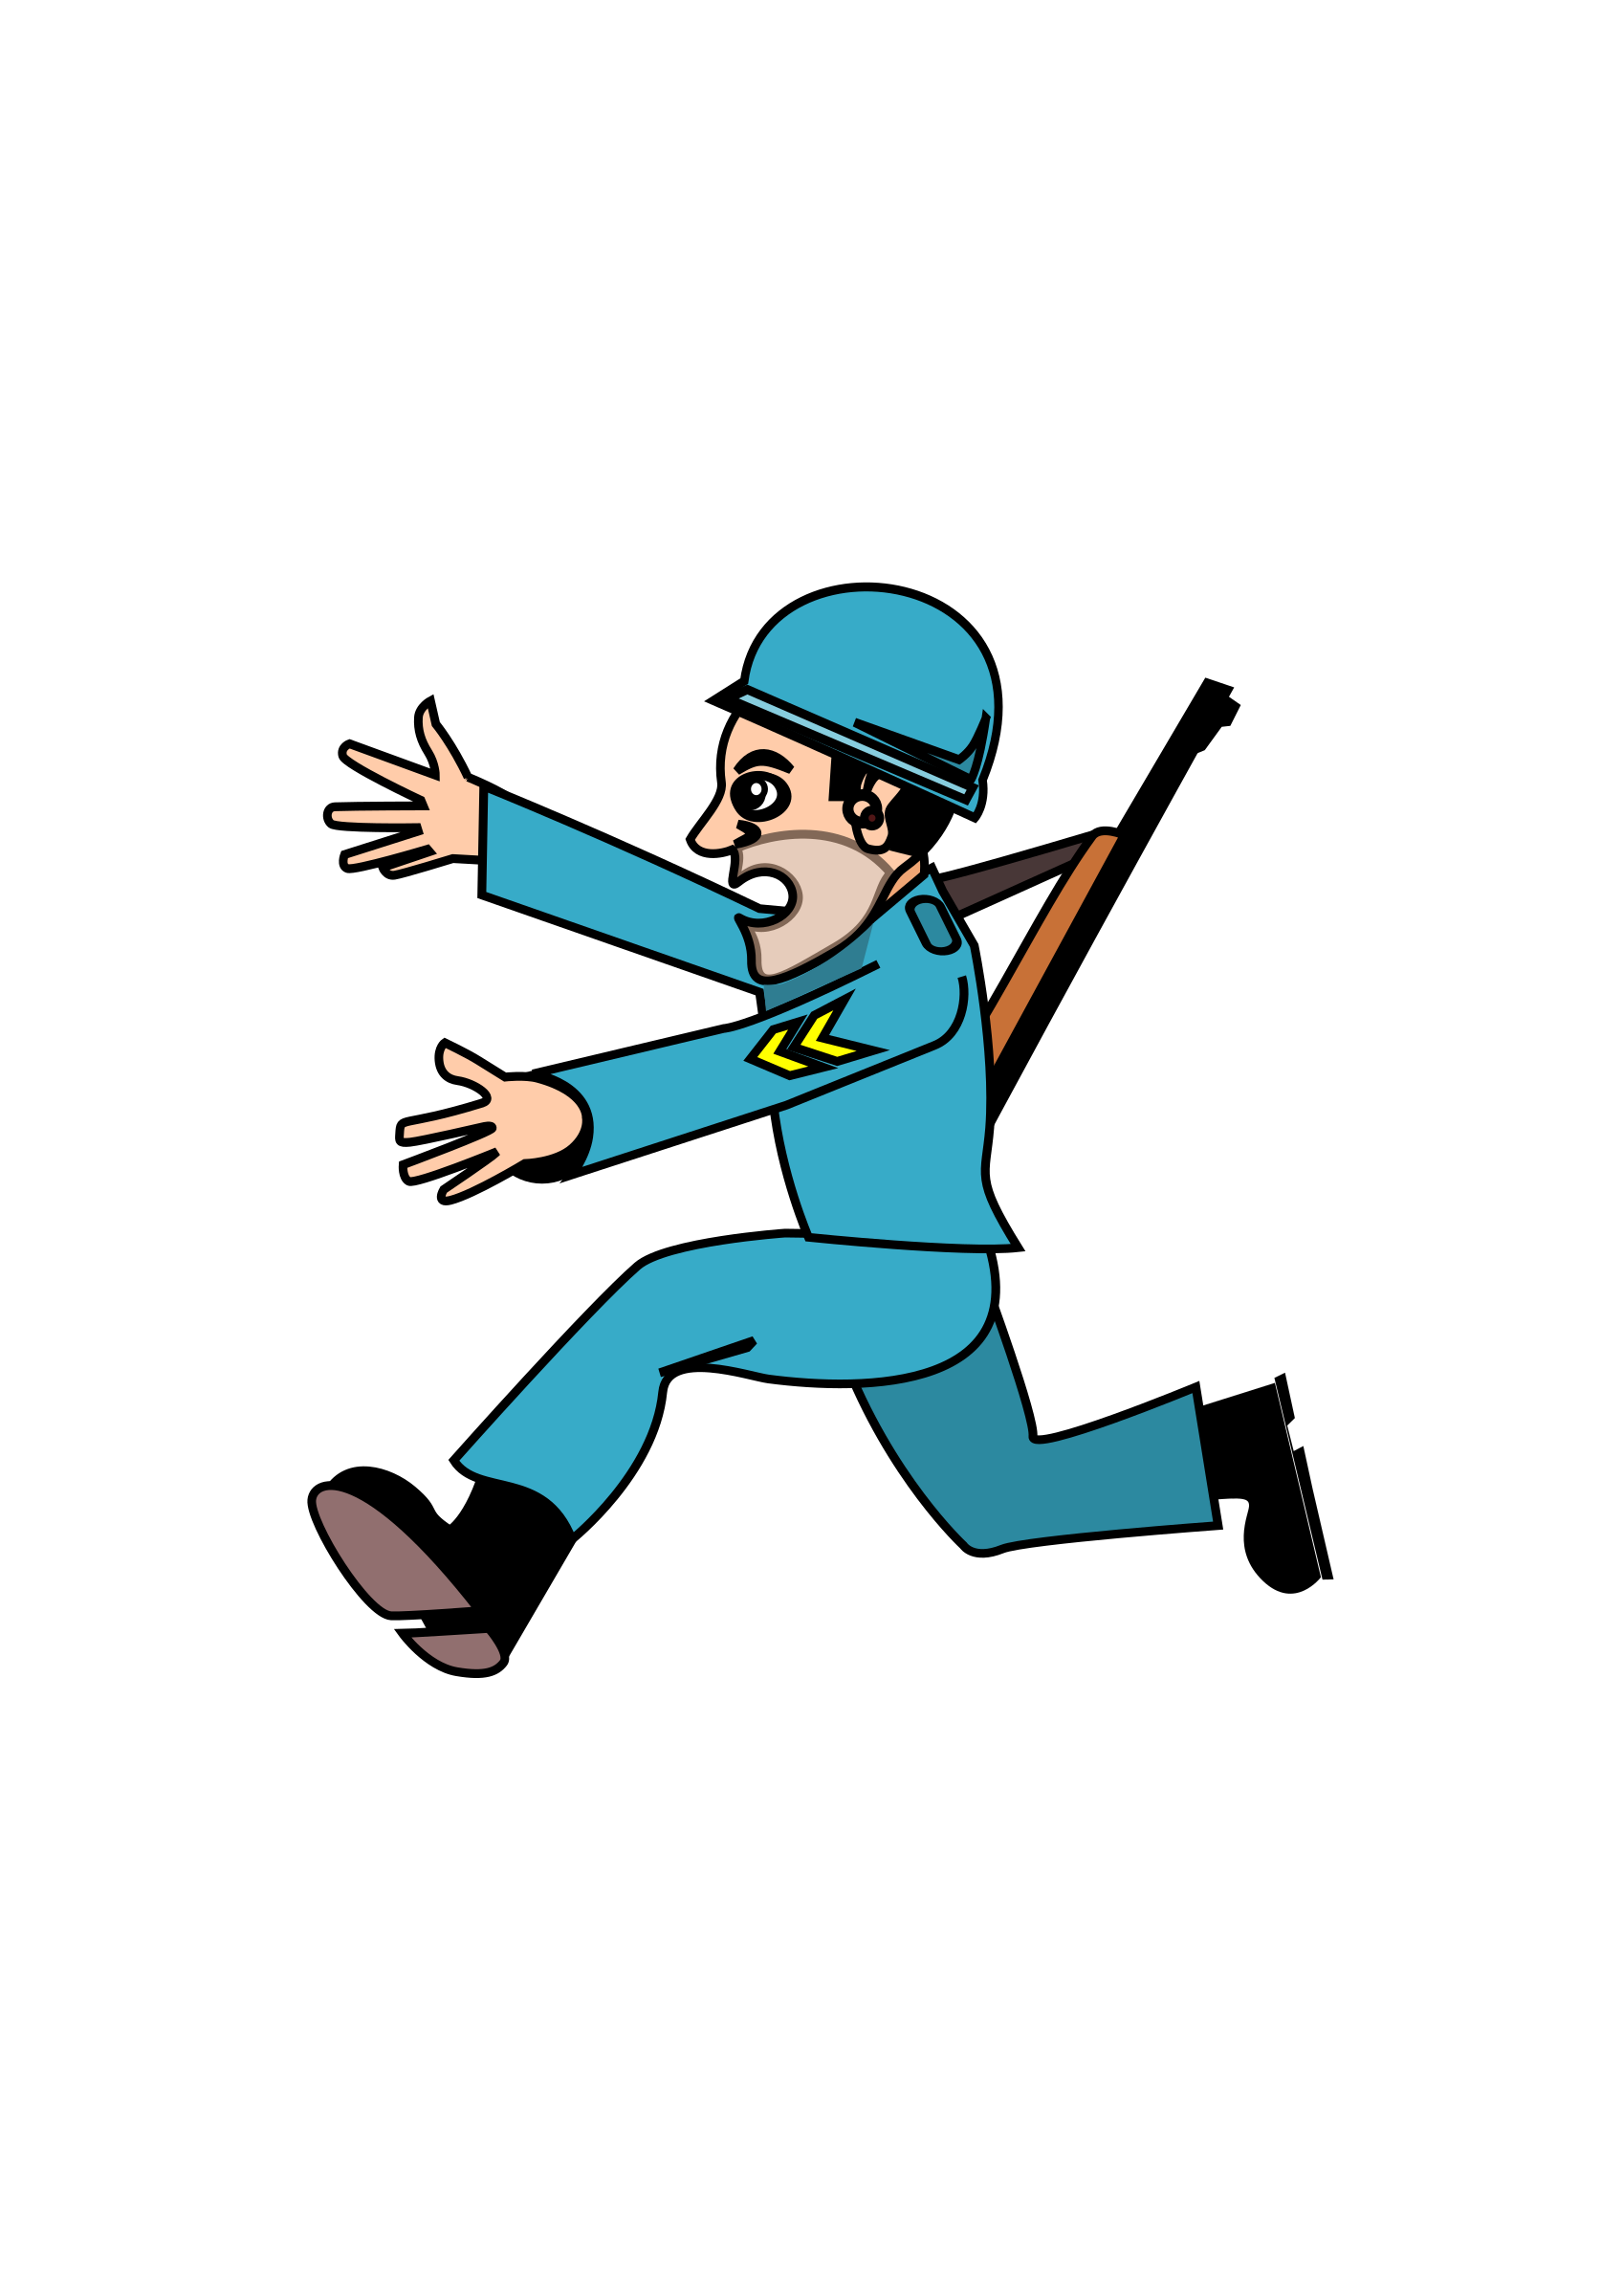 Soldier svg cartoon. Clipart soldierblue big image